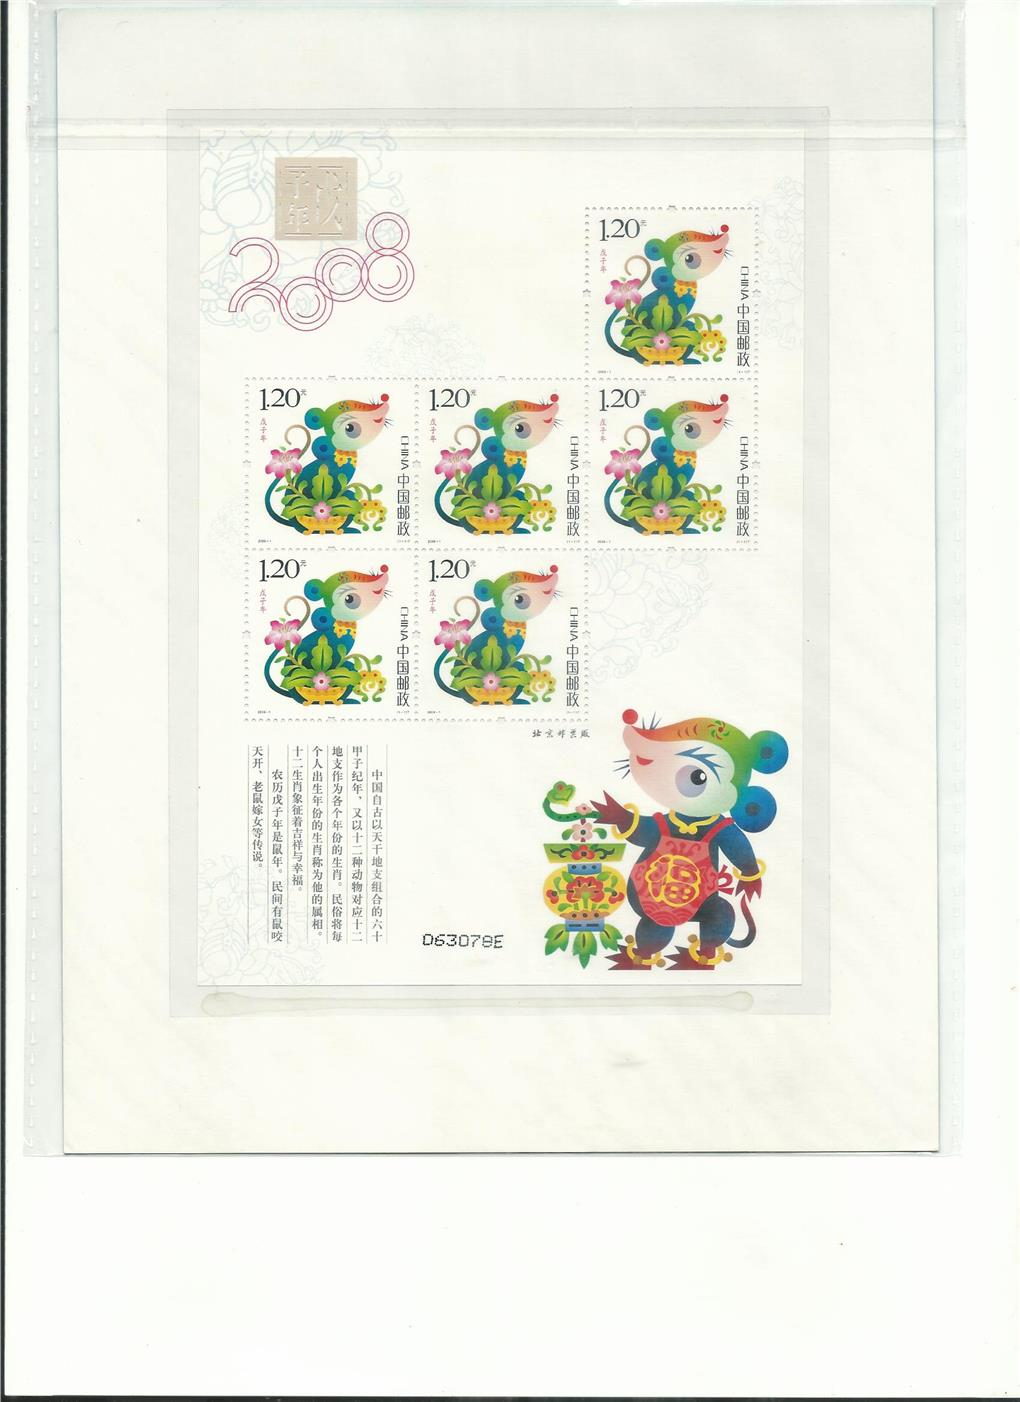 CH2008-1S CHINA 2008 YEAR OF THE RAT MINI SHEETLET